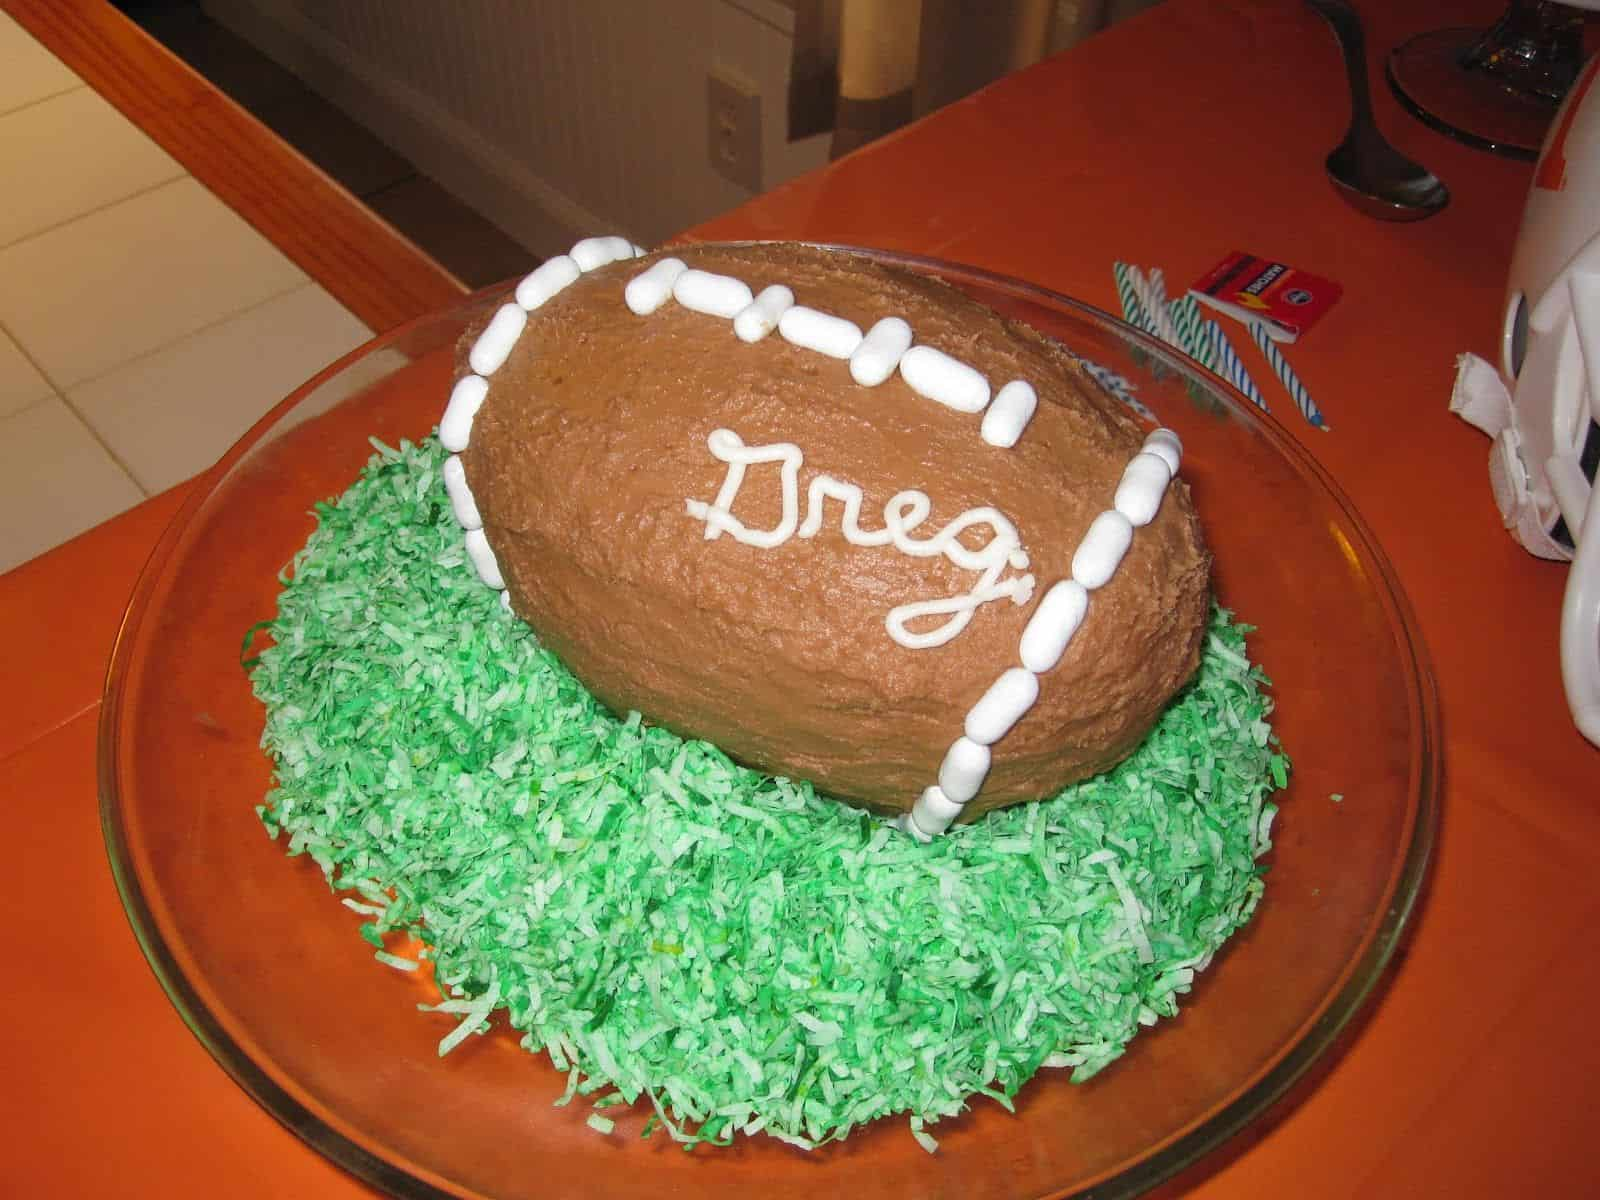 Football cake on dyed shredded coconut grass